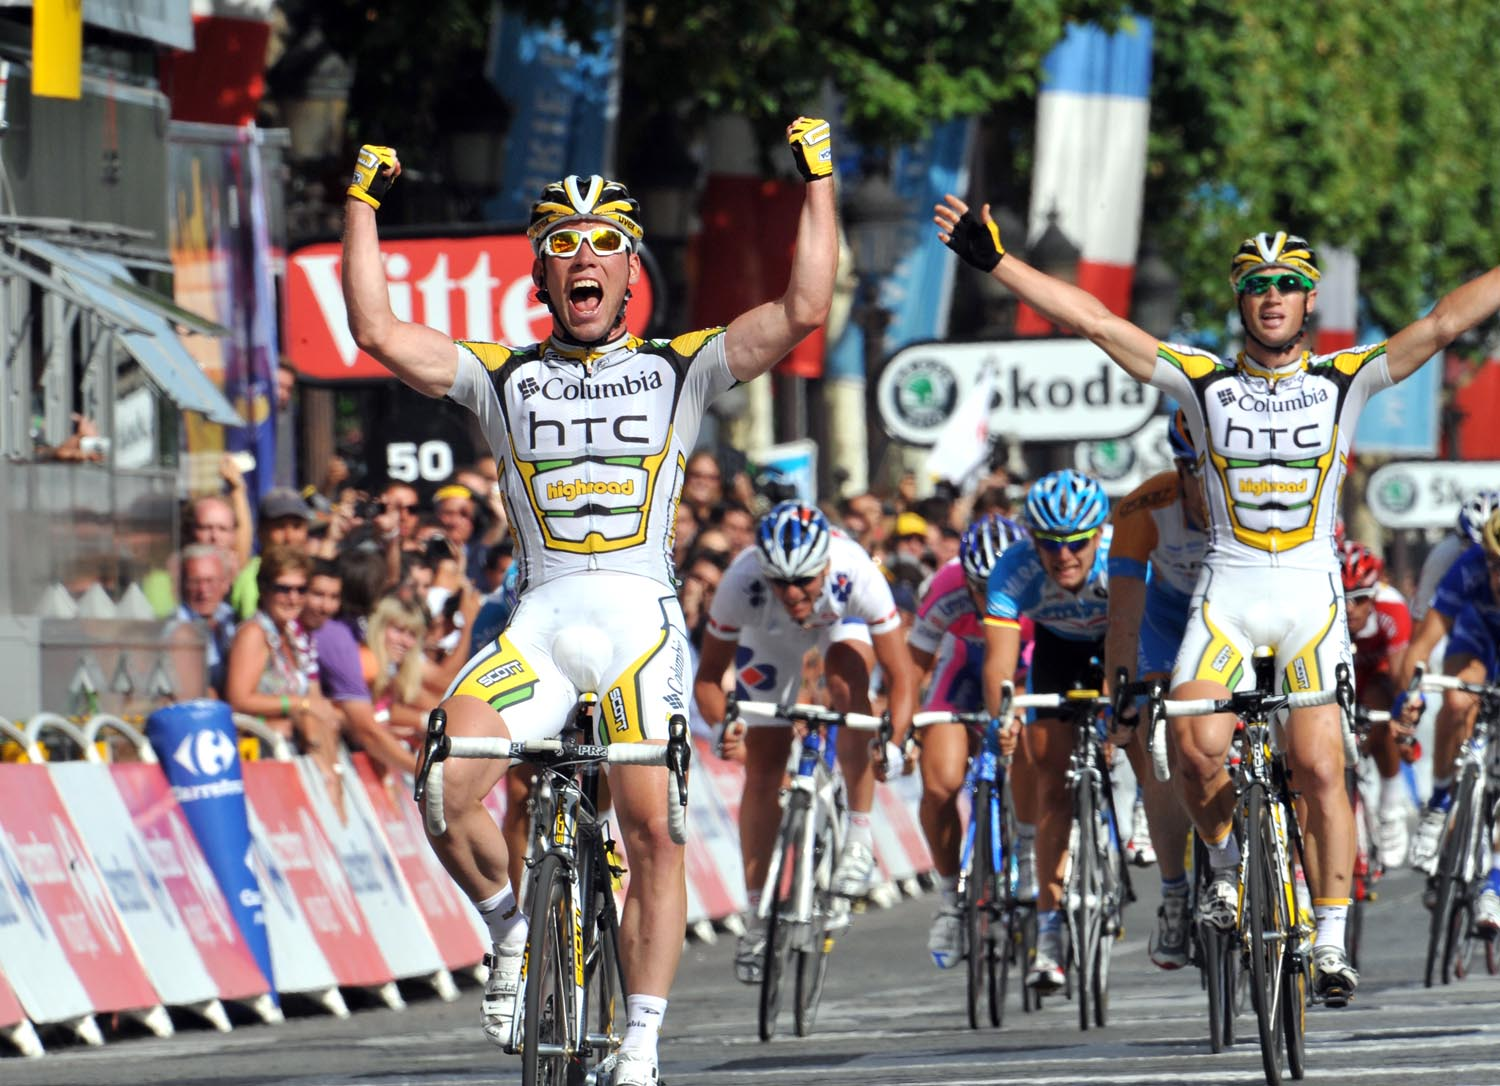 Mark Cavendish wins, Tour de France 2009, stage 21